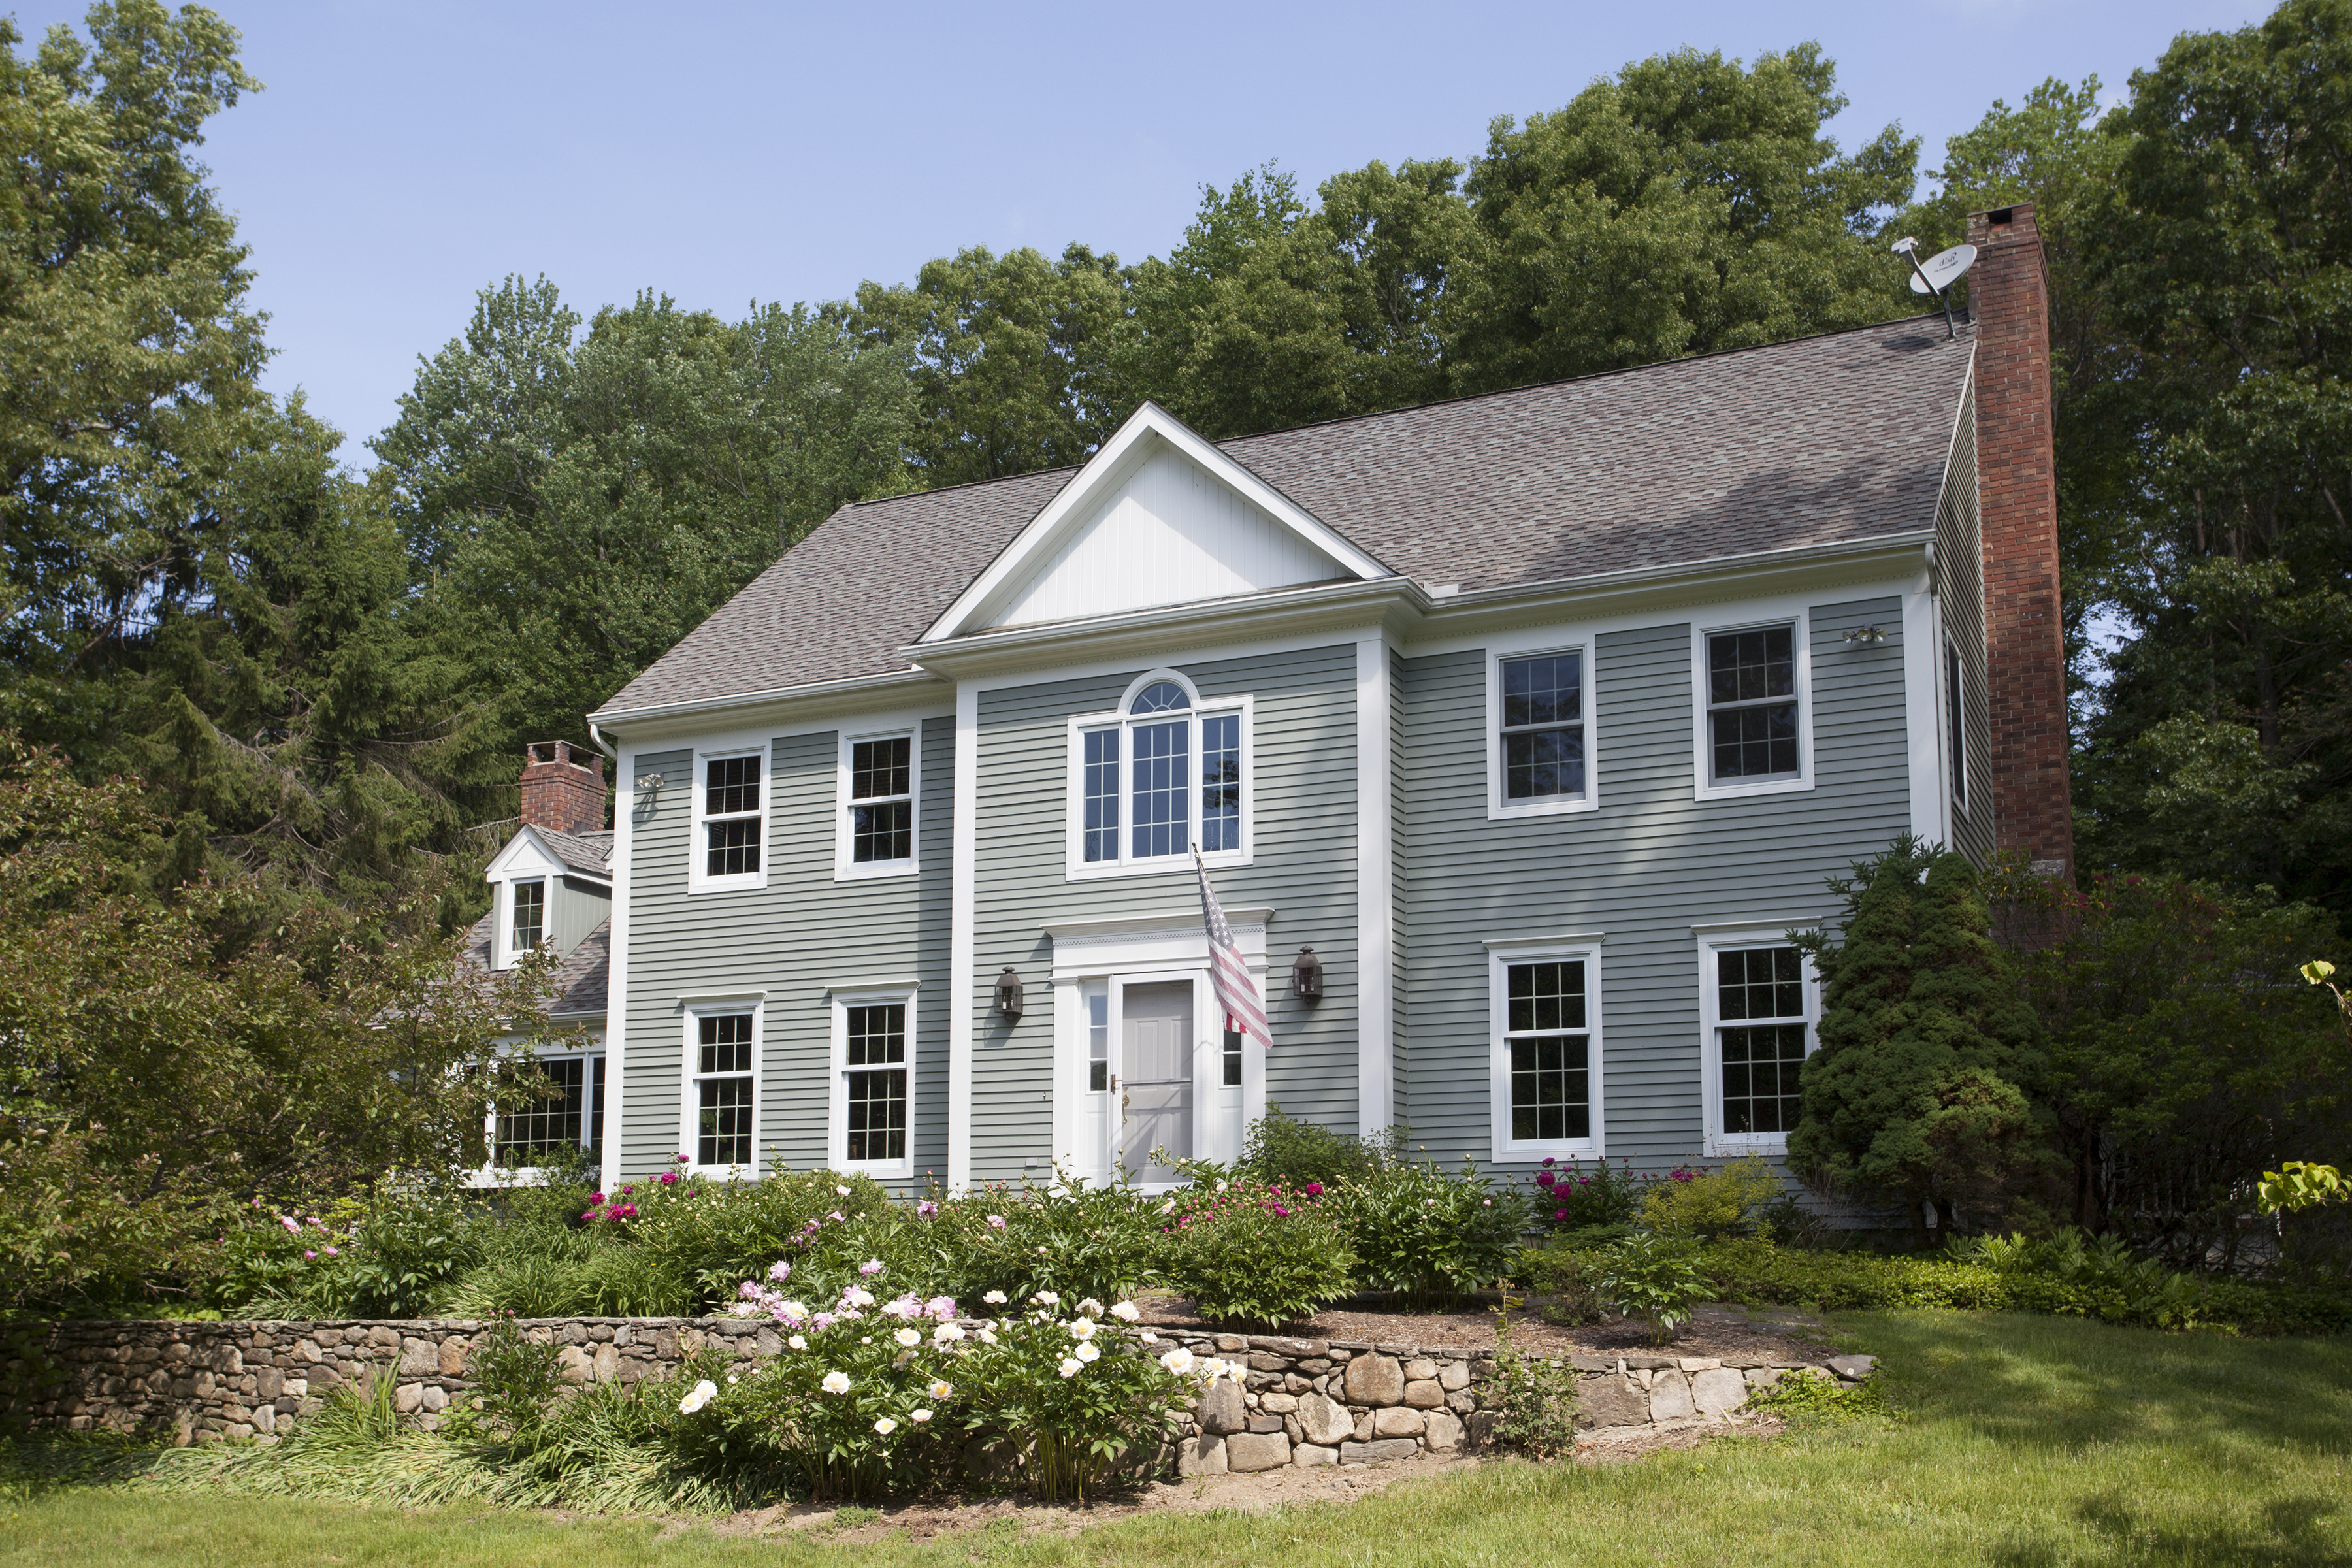 Single Family Home for Sale at Thoughtfully Designed Colonial 10 Inwood Lane Woodbury, Connecticut 06798 United States